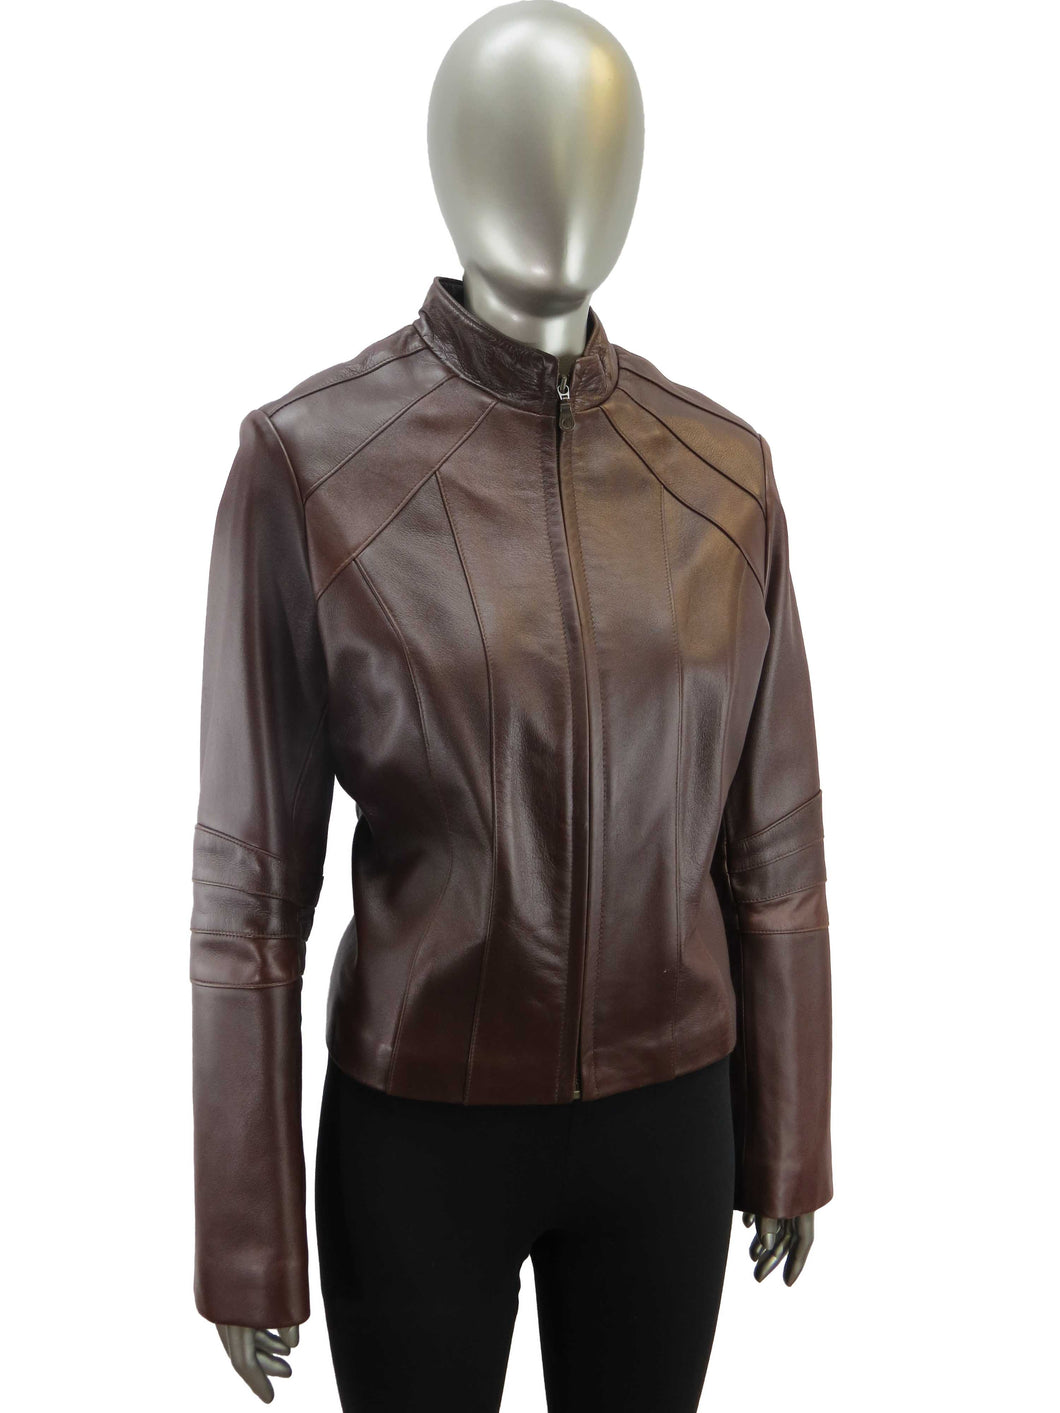 Mercury | 325 | Leather Jacket | Brown